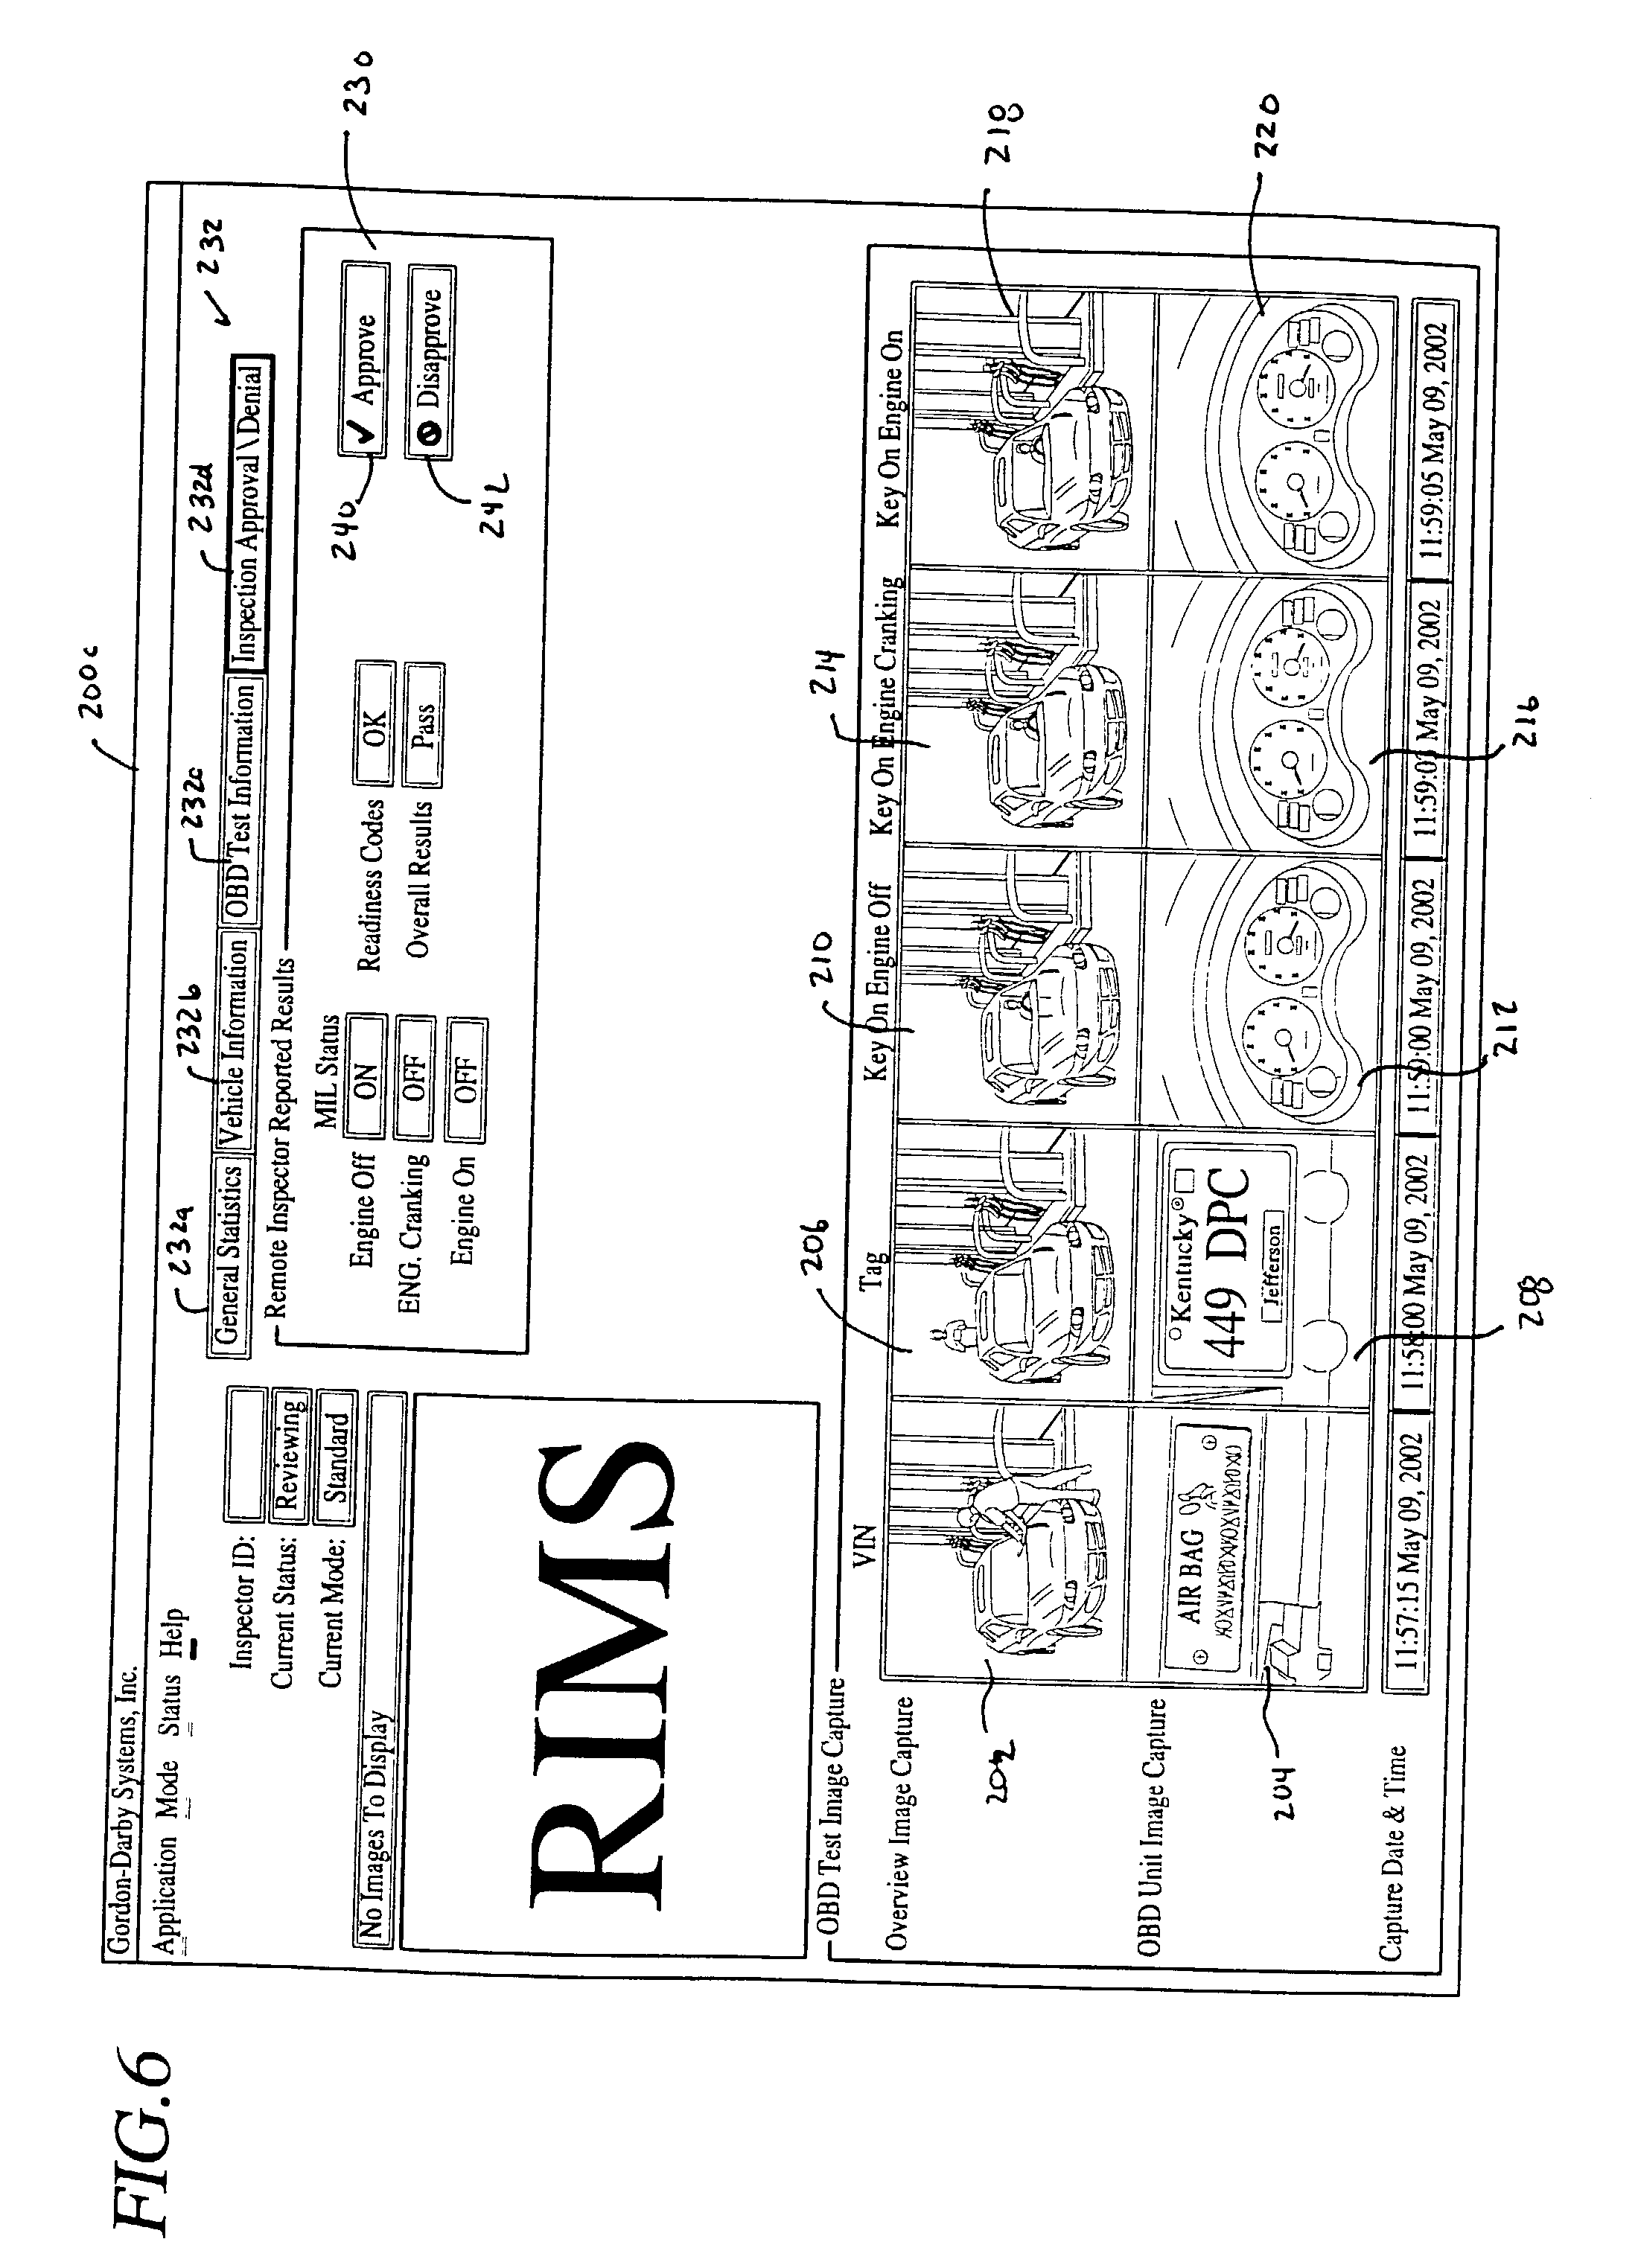 US6330499 together with Connected cars forging new parterships further US20040015278 moreover US20030060953 in addition US20130317693. on remote vehicle diagnostics